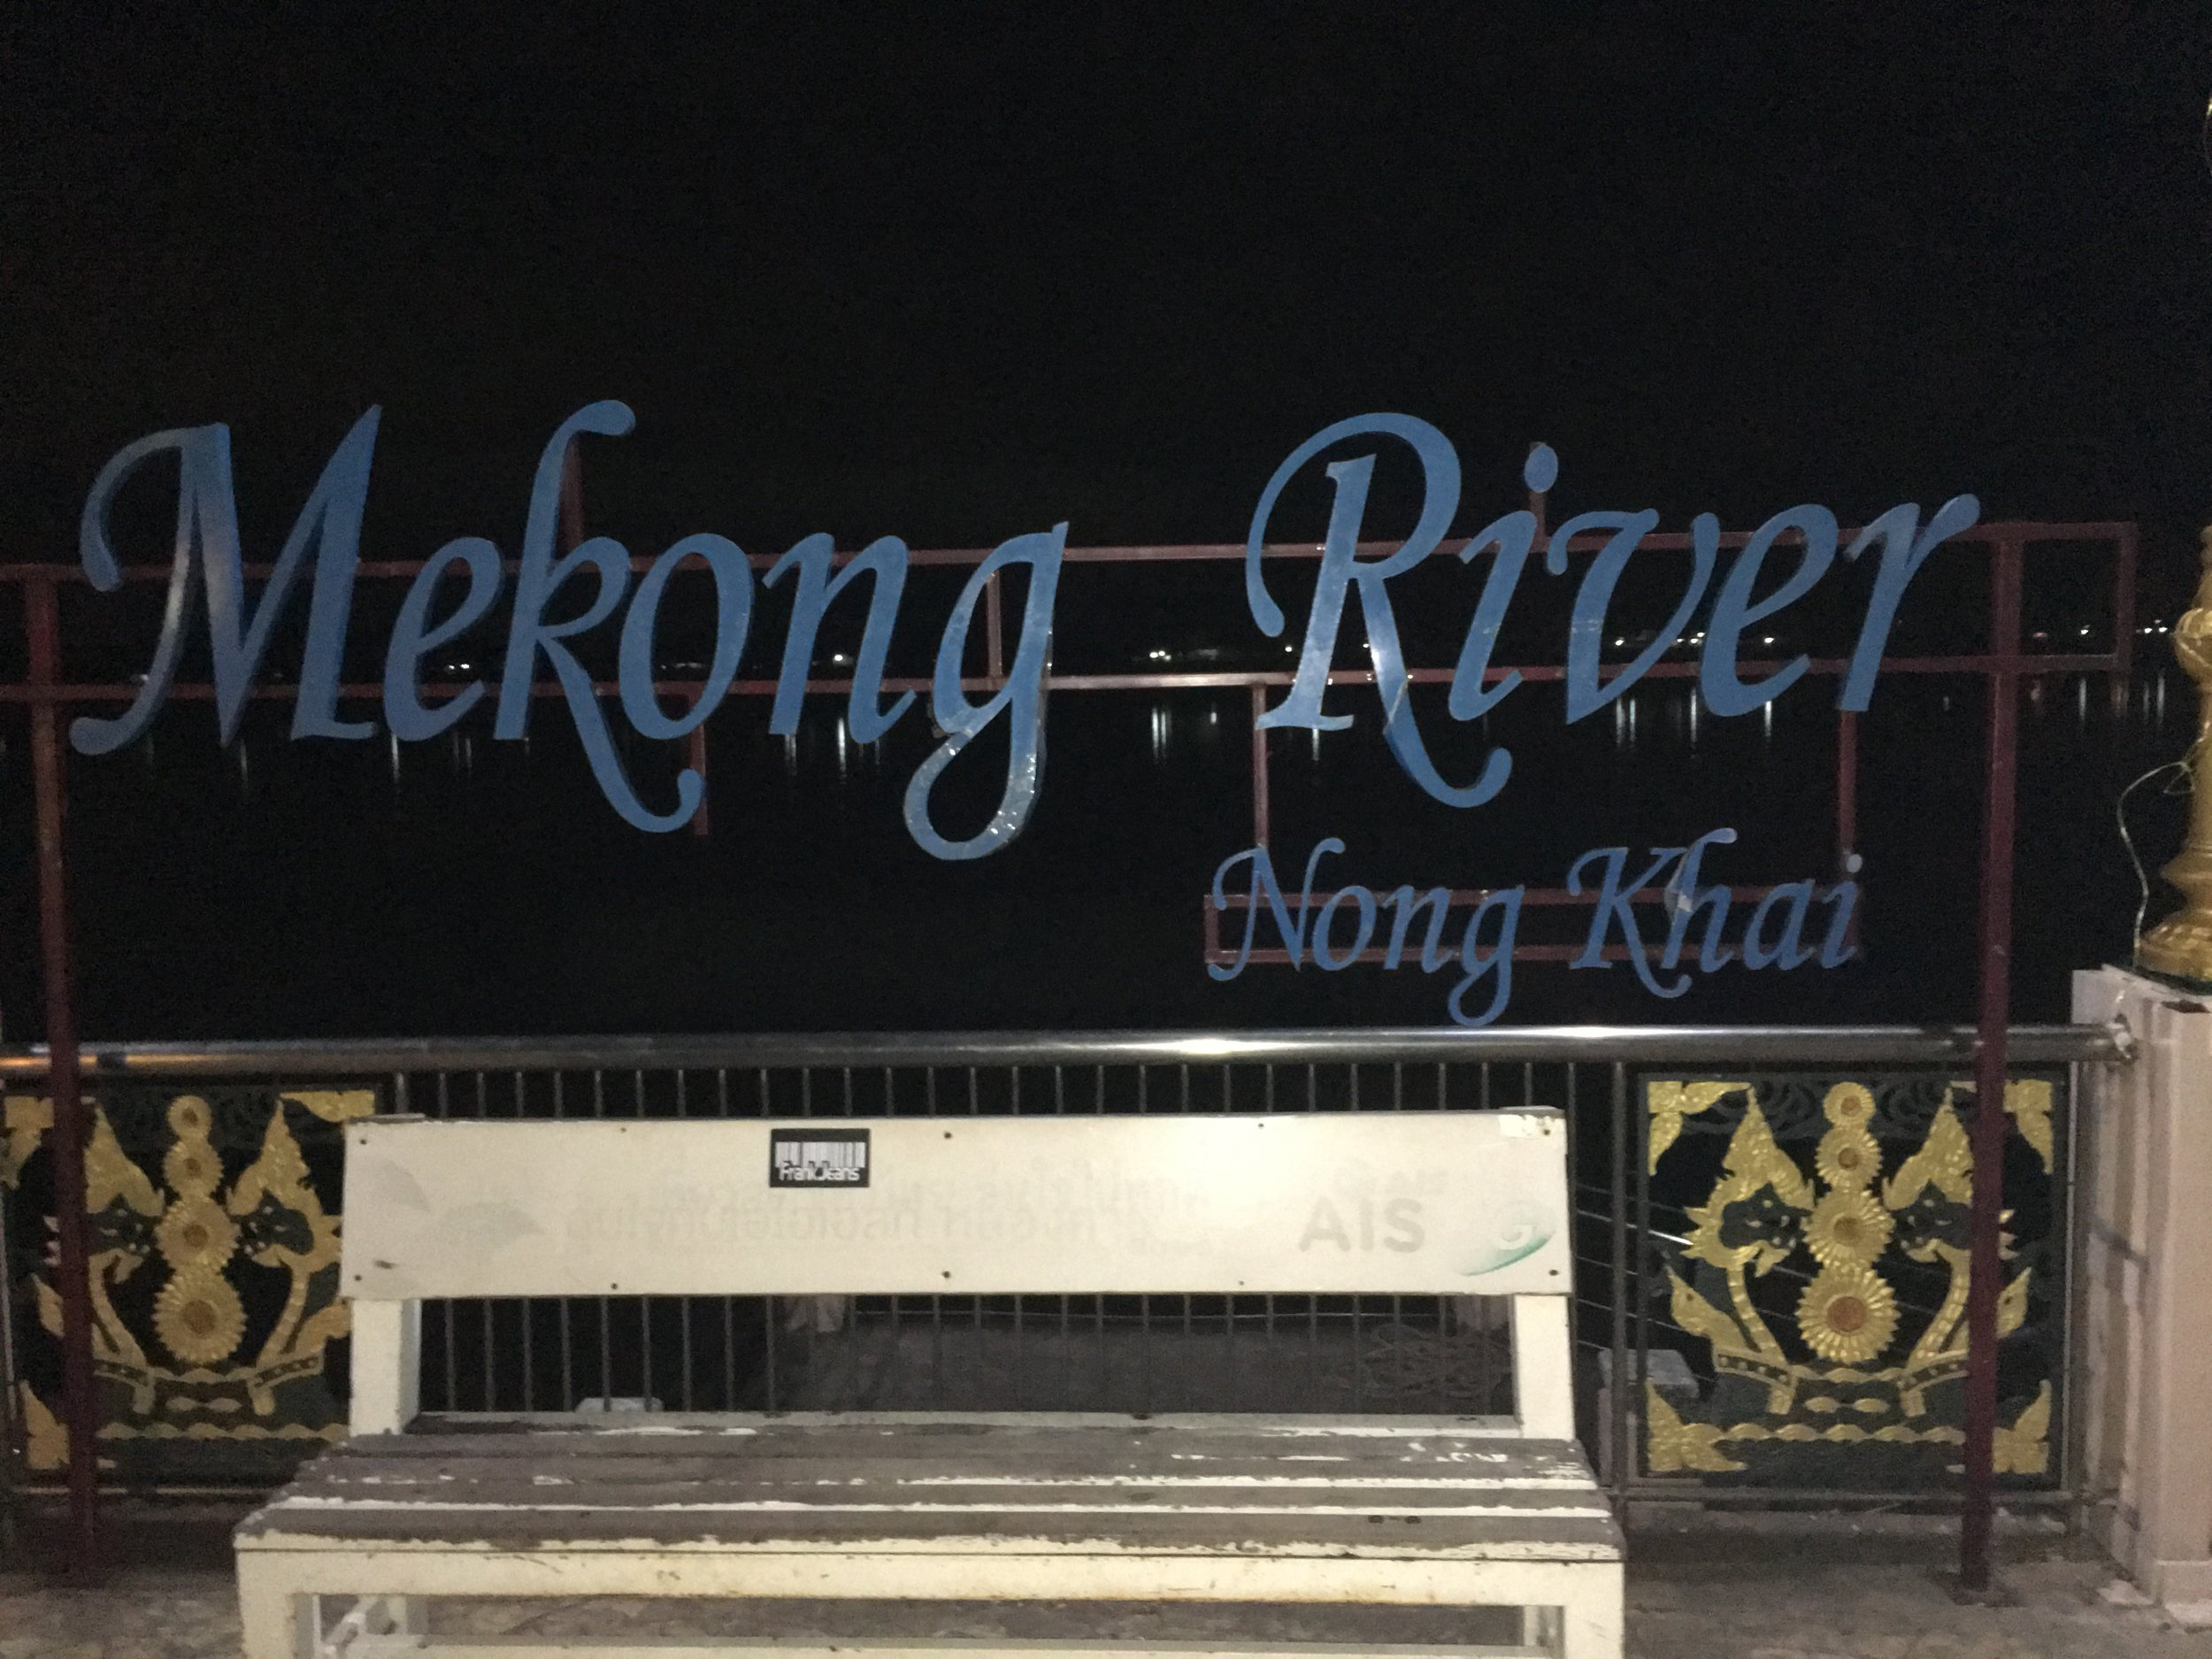 Weclome to the Mekong River